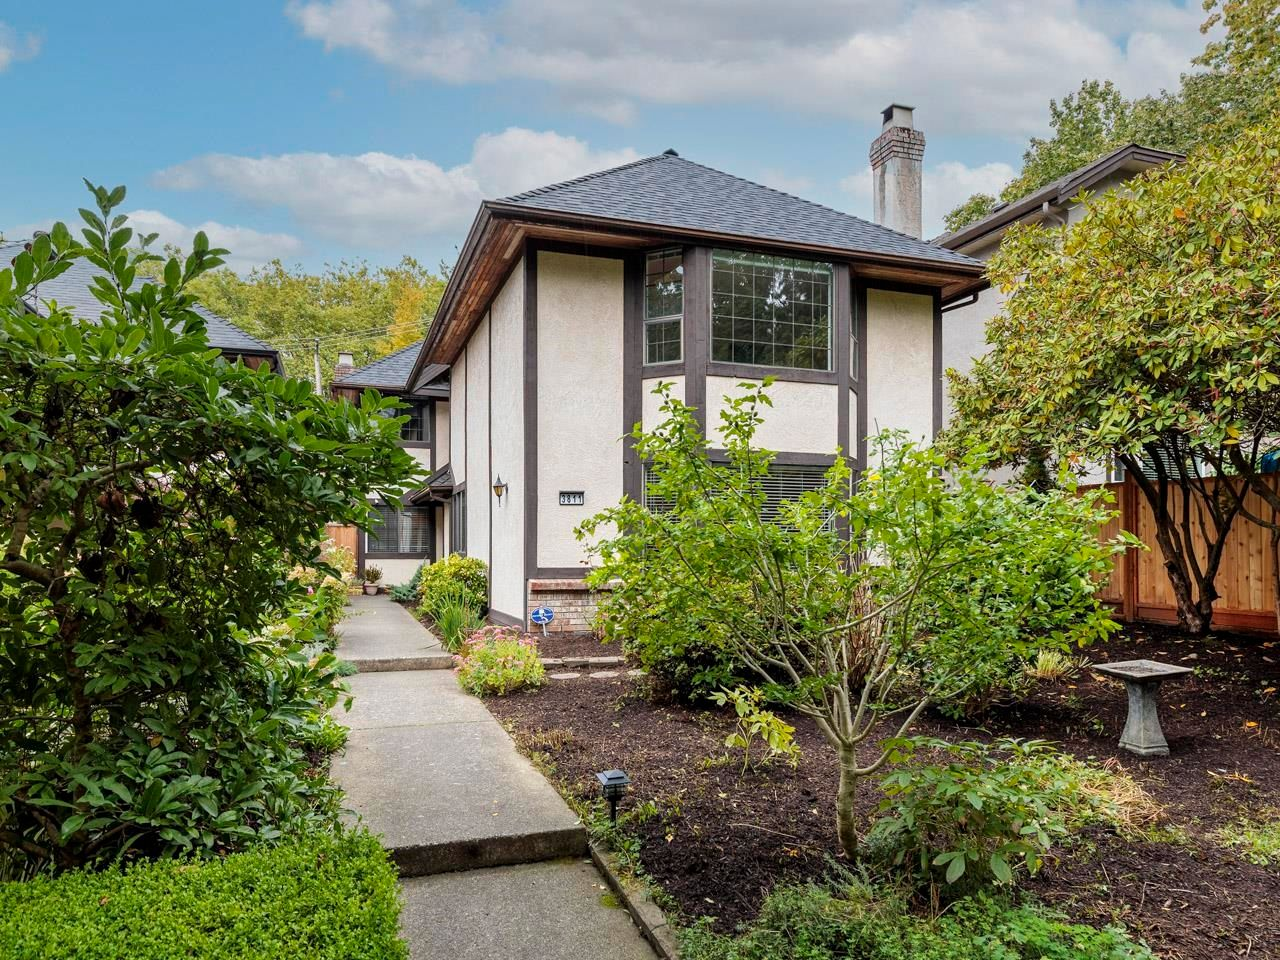 """Main Photo: 3811 W 27TH Avenue in Vancouver: Dunbar House for sale in """"Dunbar"""" (Vancouver West)  : MLS®# R2620293"""